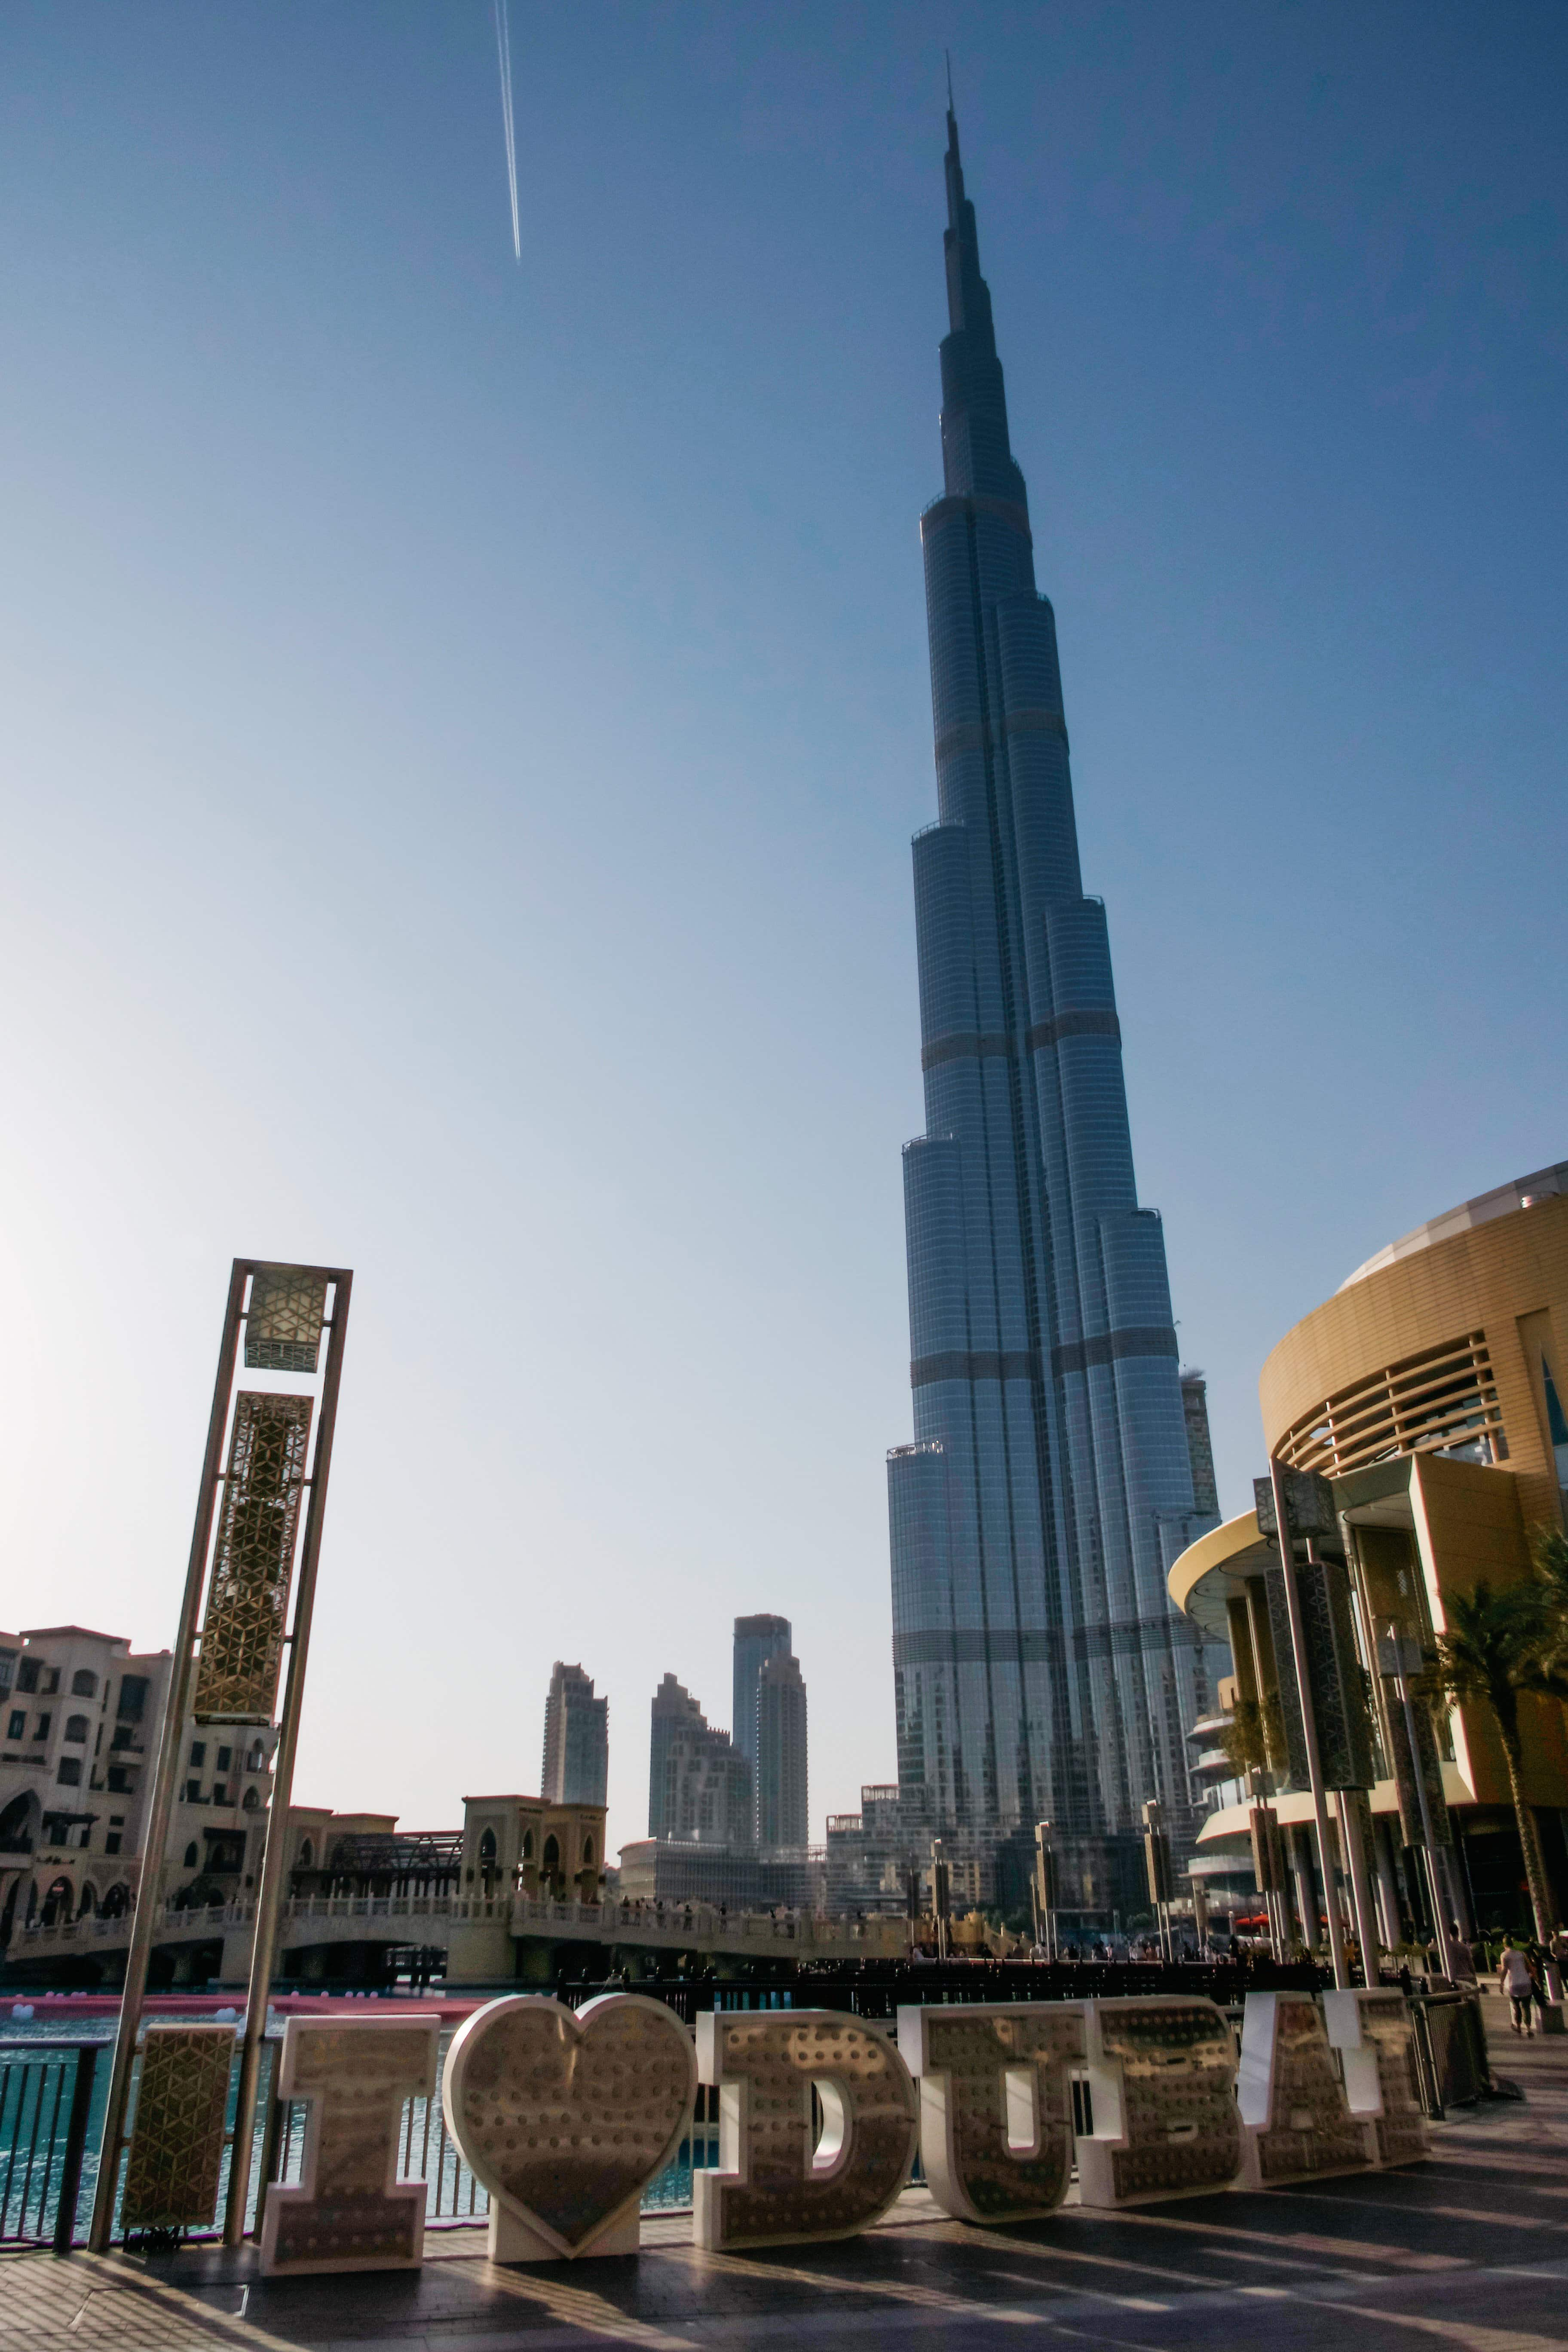 Famed as the tallest man-made building in the world, the Burj Khalifa is bound to astound you. If you do one thing in Dubai, the Burj Khalifa should be it! Read more at www.thefivefoottraveler.com